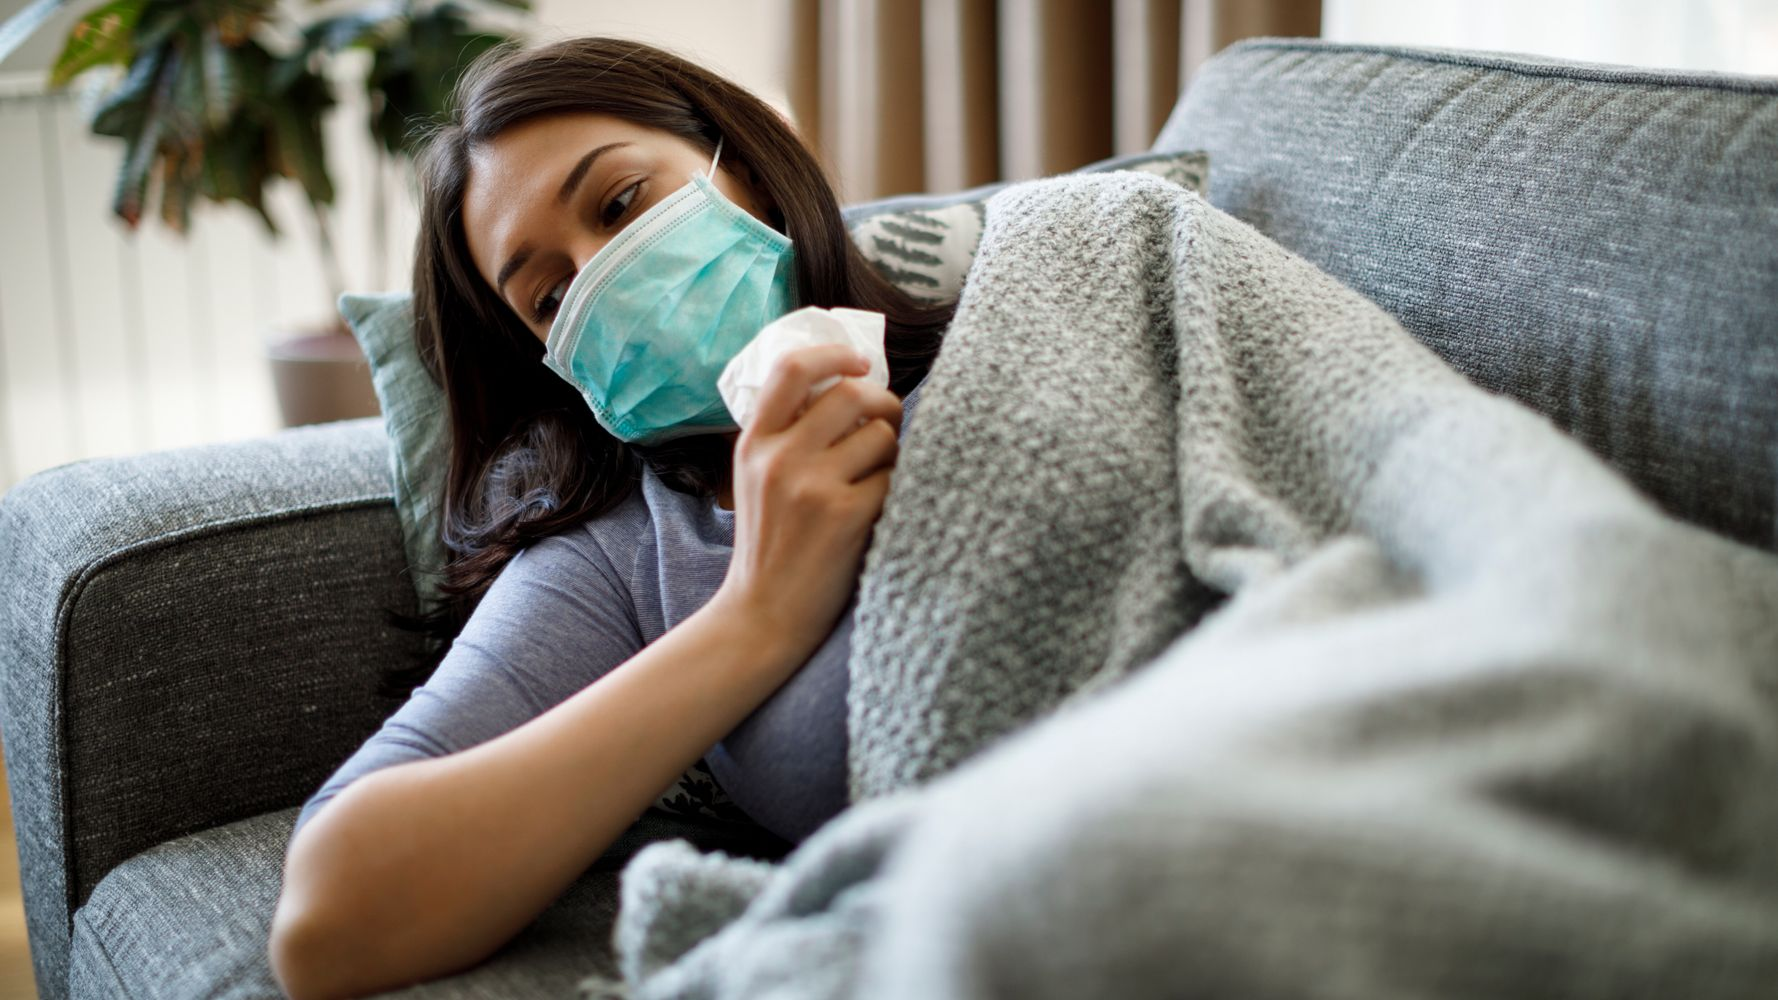 How Does COVID-19 Spread Differently Than The Flu?